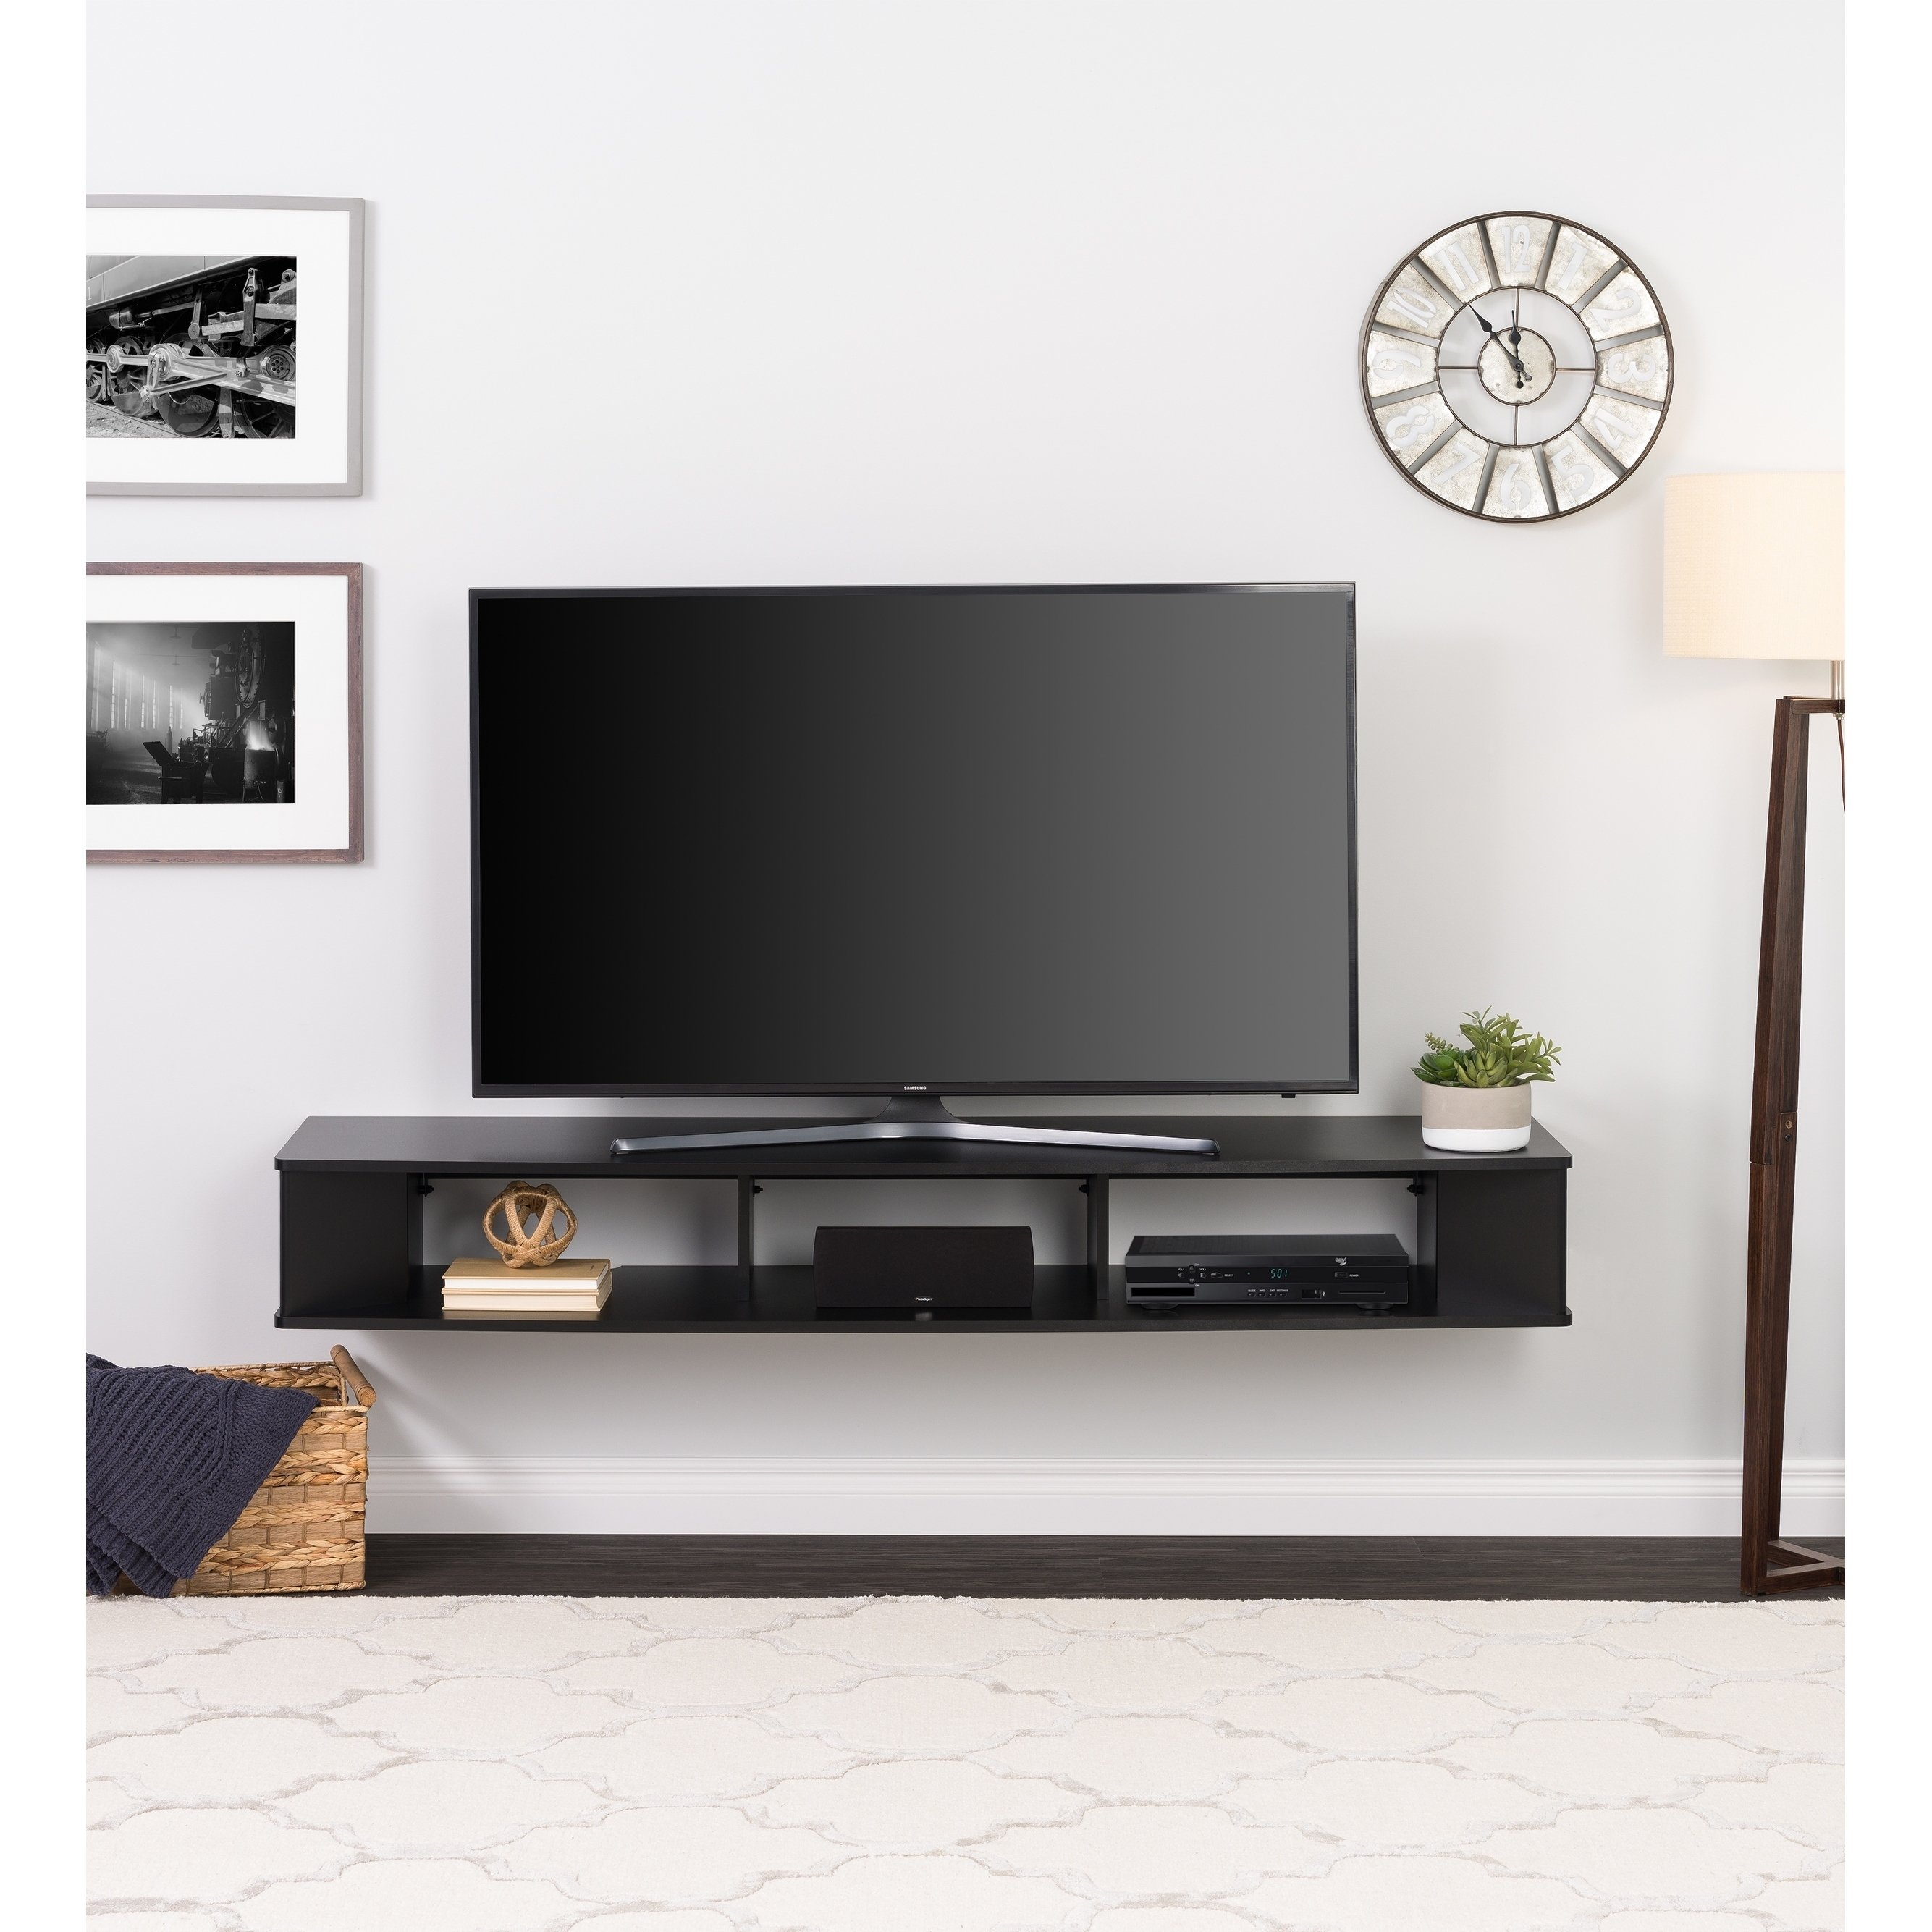 Shop Prepac 70 Inch Wide Wall Mounted Tv Stand – Free Shipping Today Intended For Century Sky 60 Inch Tv Stands (View 27 of 30)